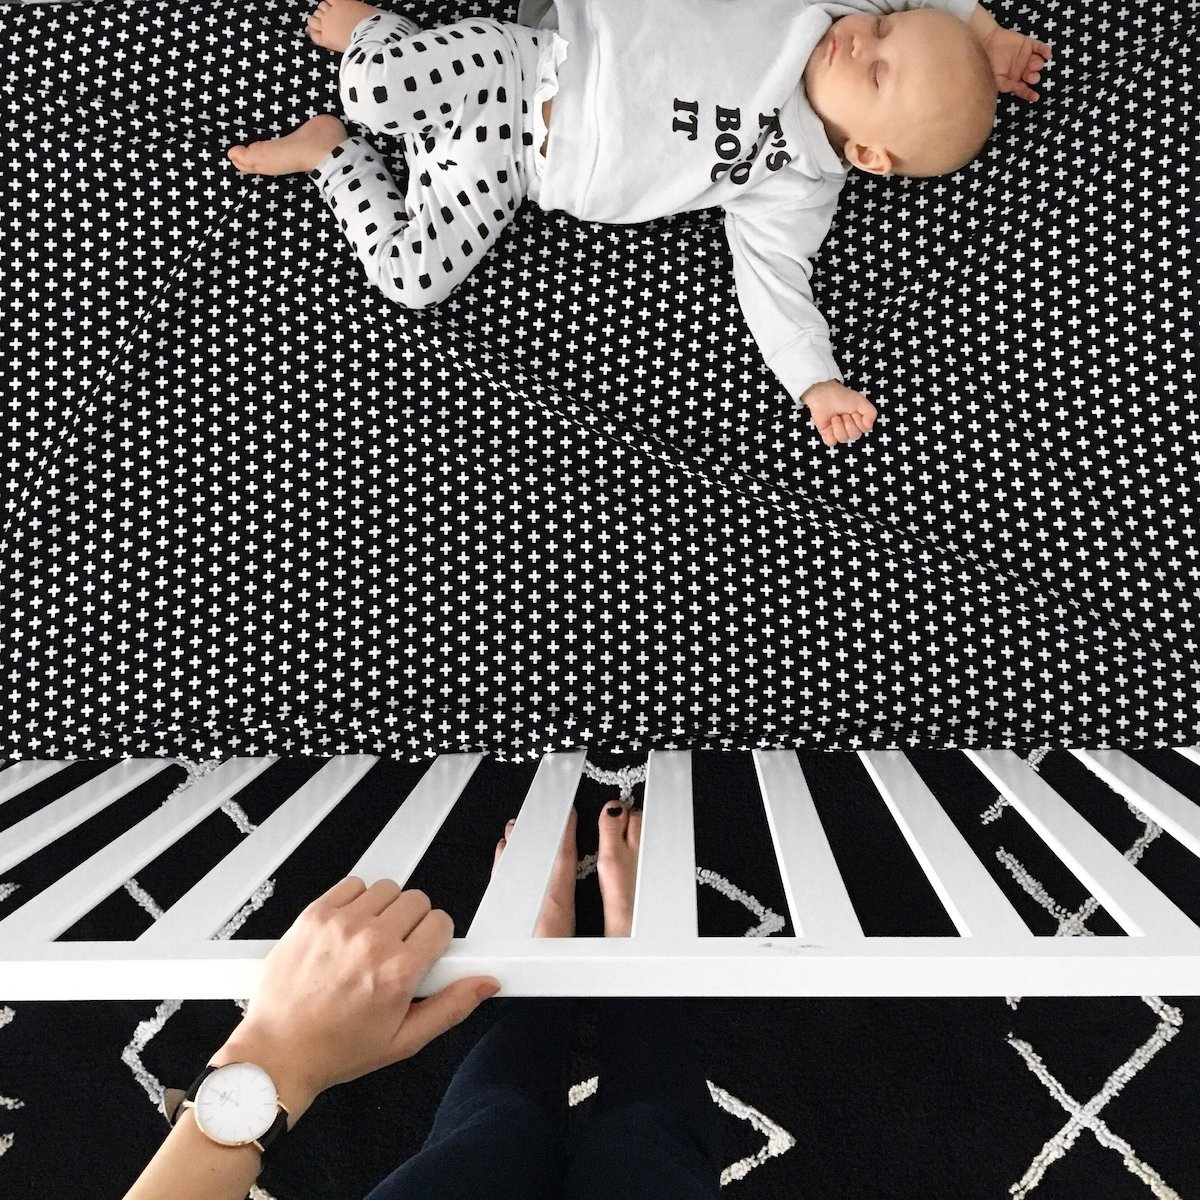 an infant sleeping in a crib with an Olli + Lime fitted crib sheet